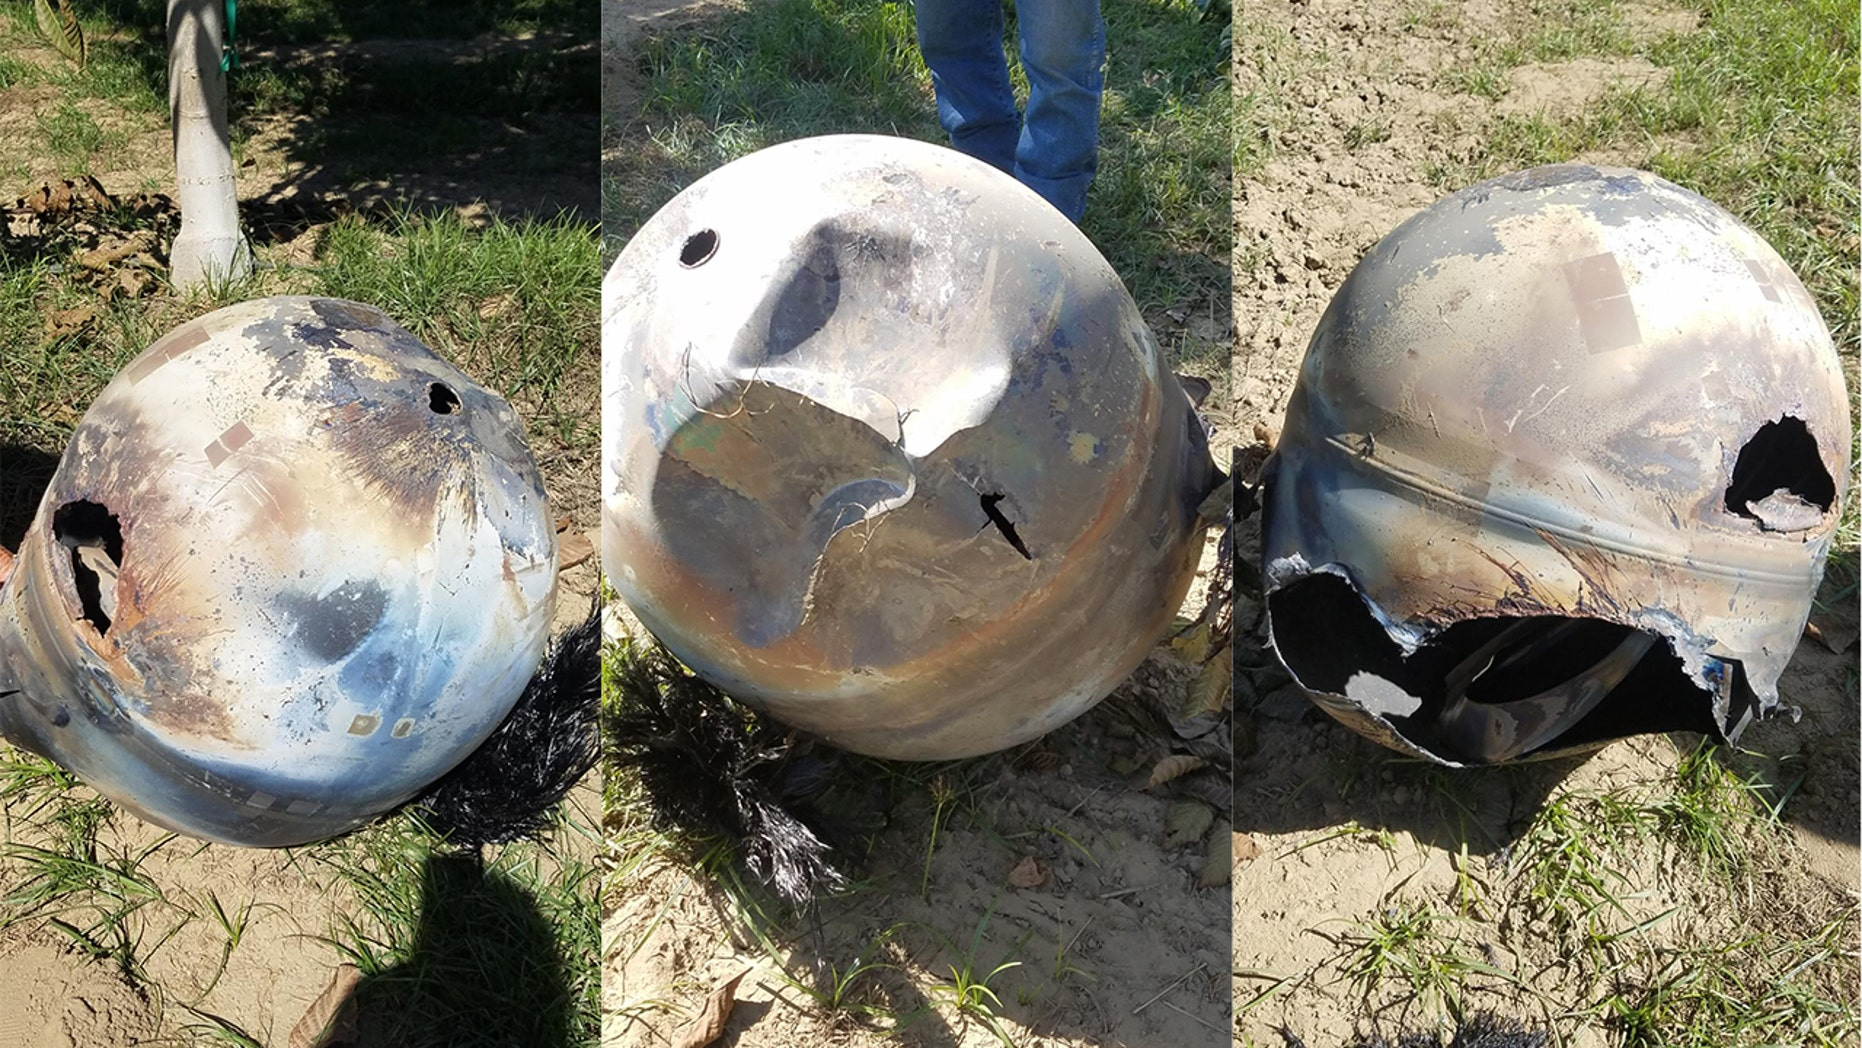 A piece of space junk landed on October 13, 2018 on a farm near Hanford, California.